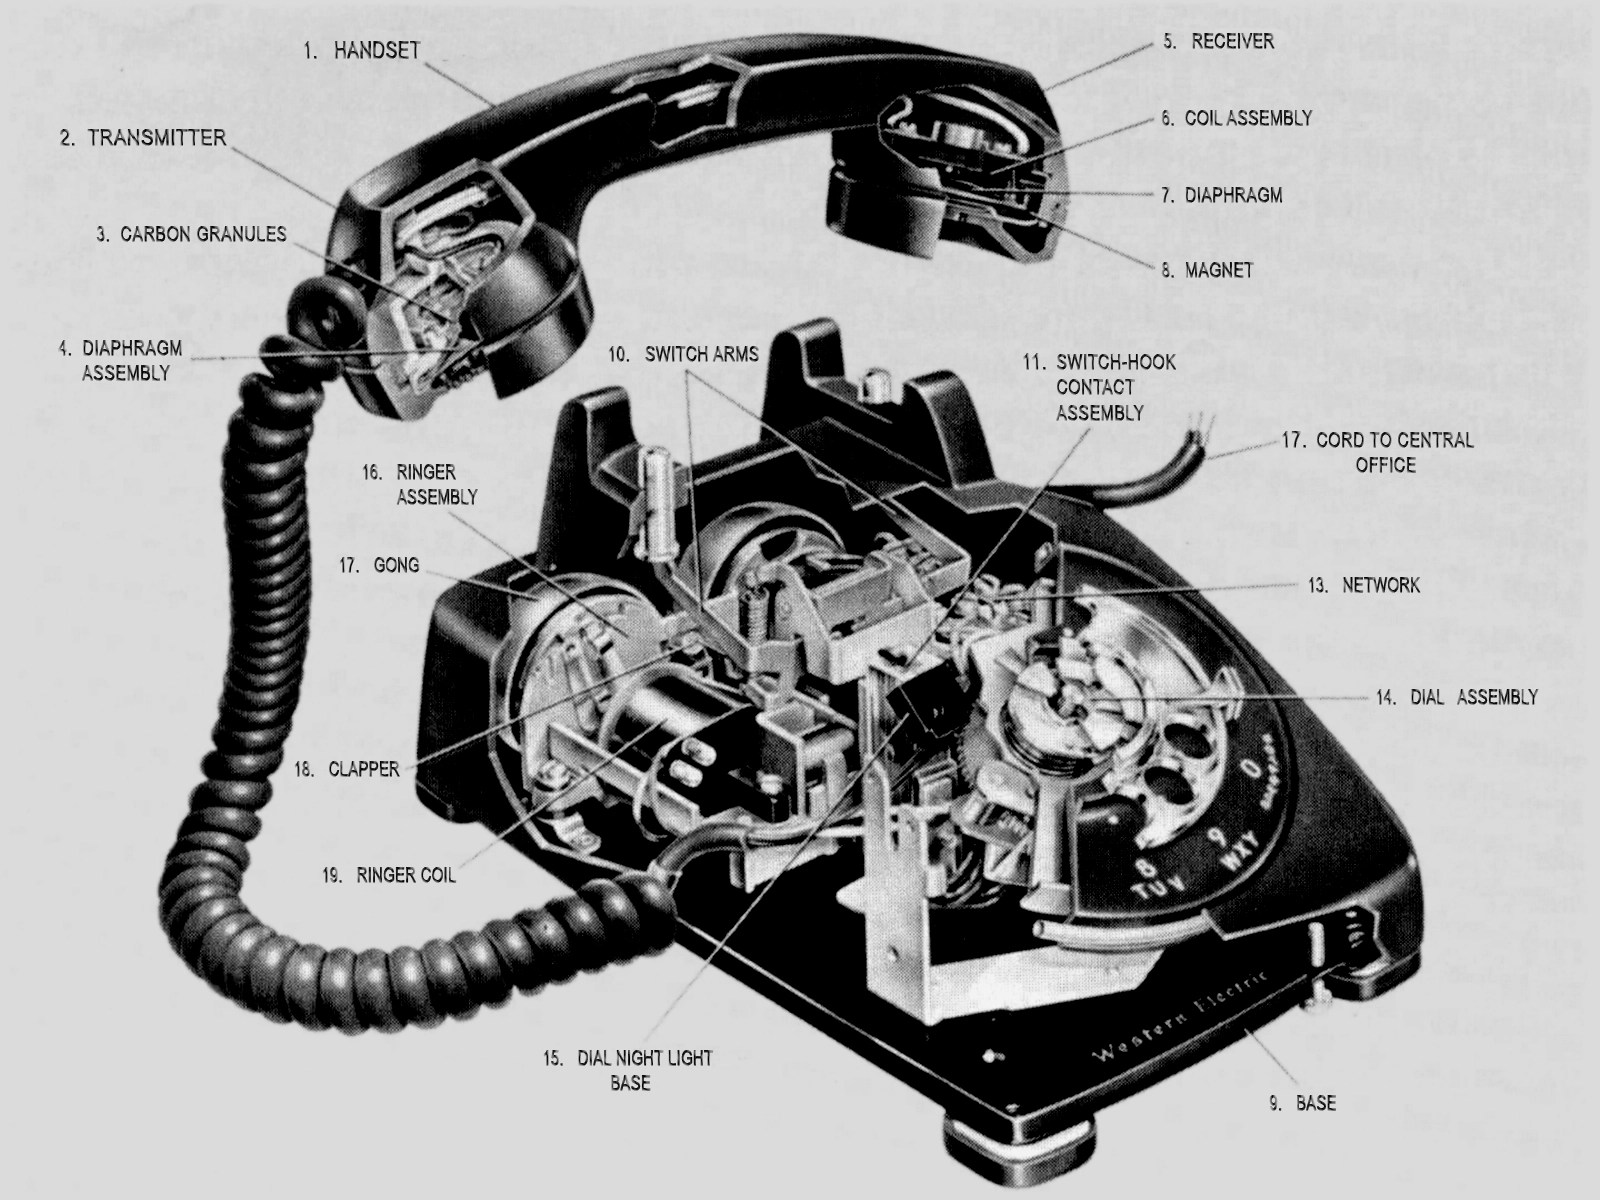 rotary phone parts diagram chinese atv wiring 110 u s tries to convict jeffrey sterling for retroactively